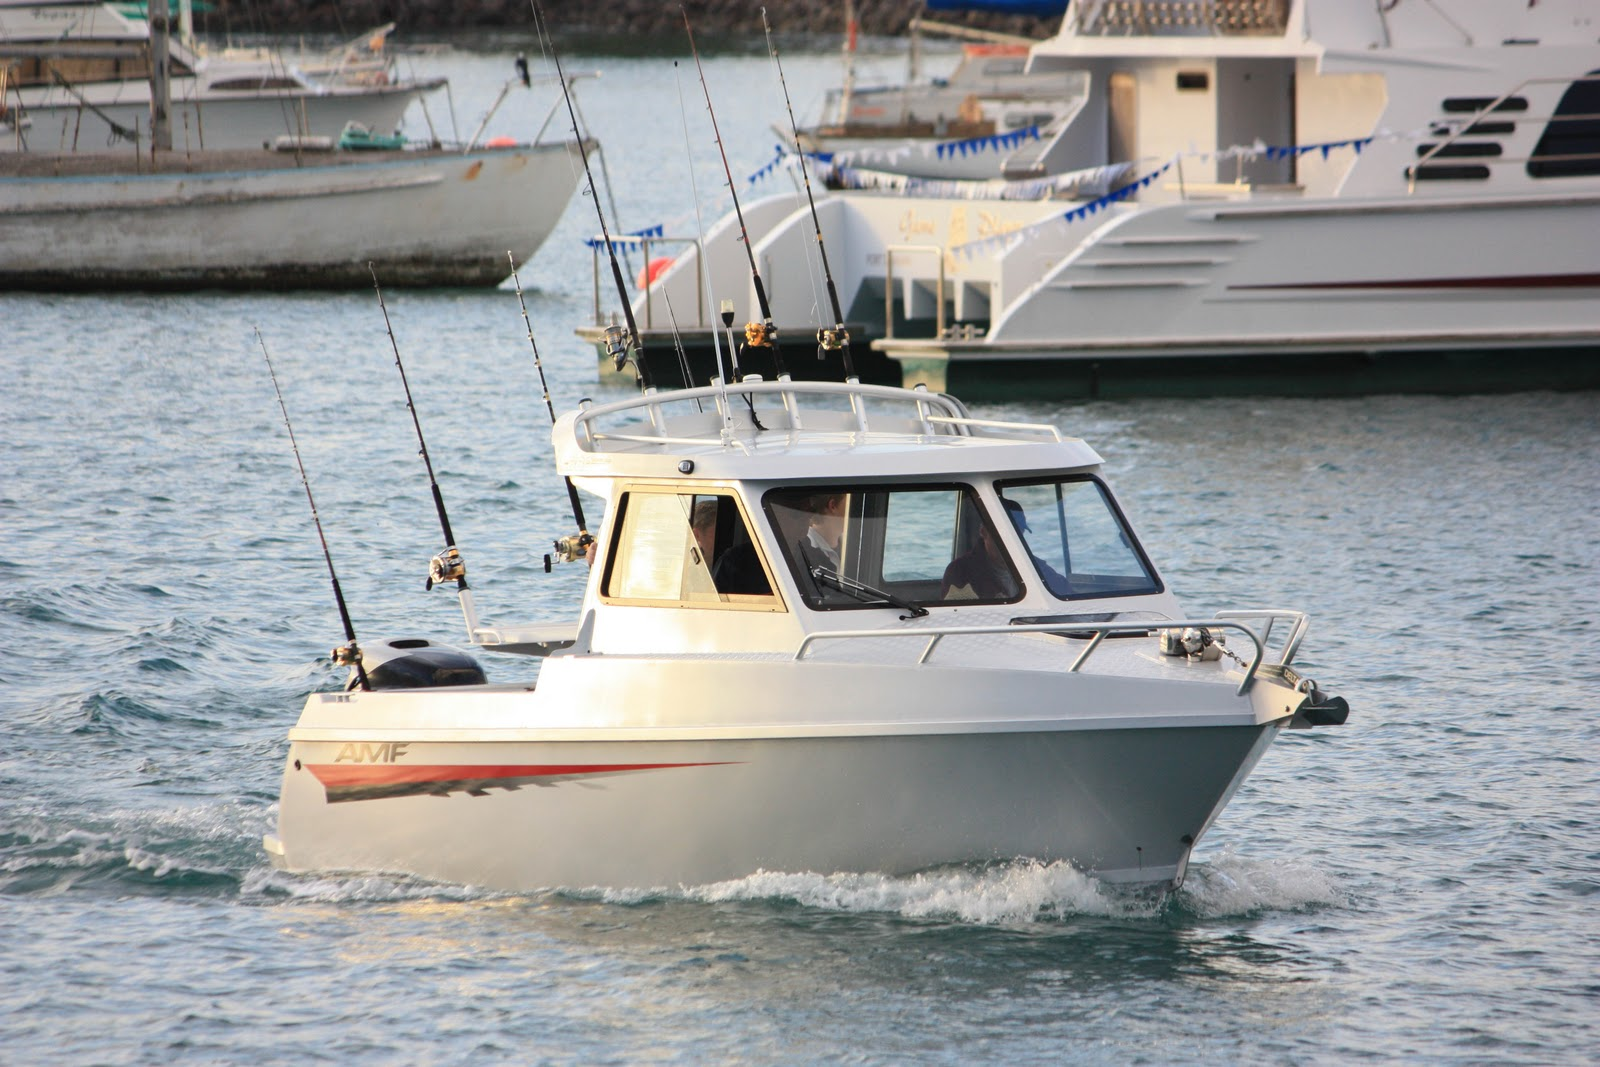 Amf Boats Alloy Boat Builders Amf 660 Hardtop Cabin